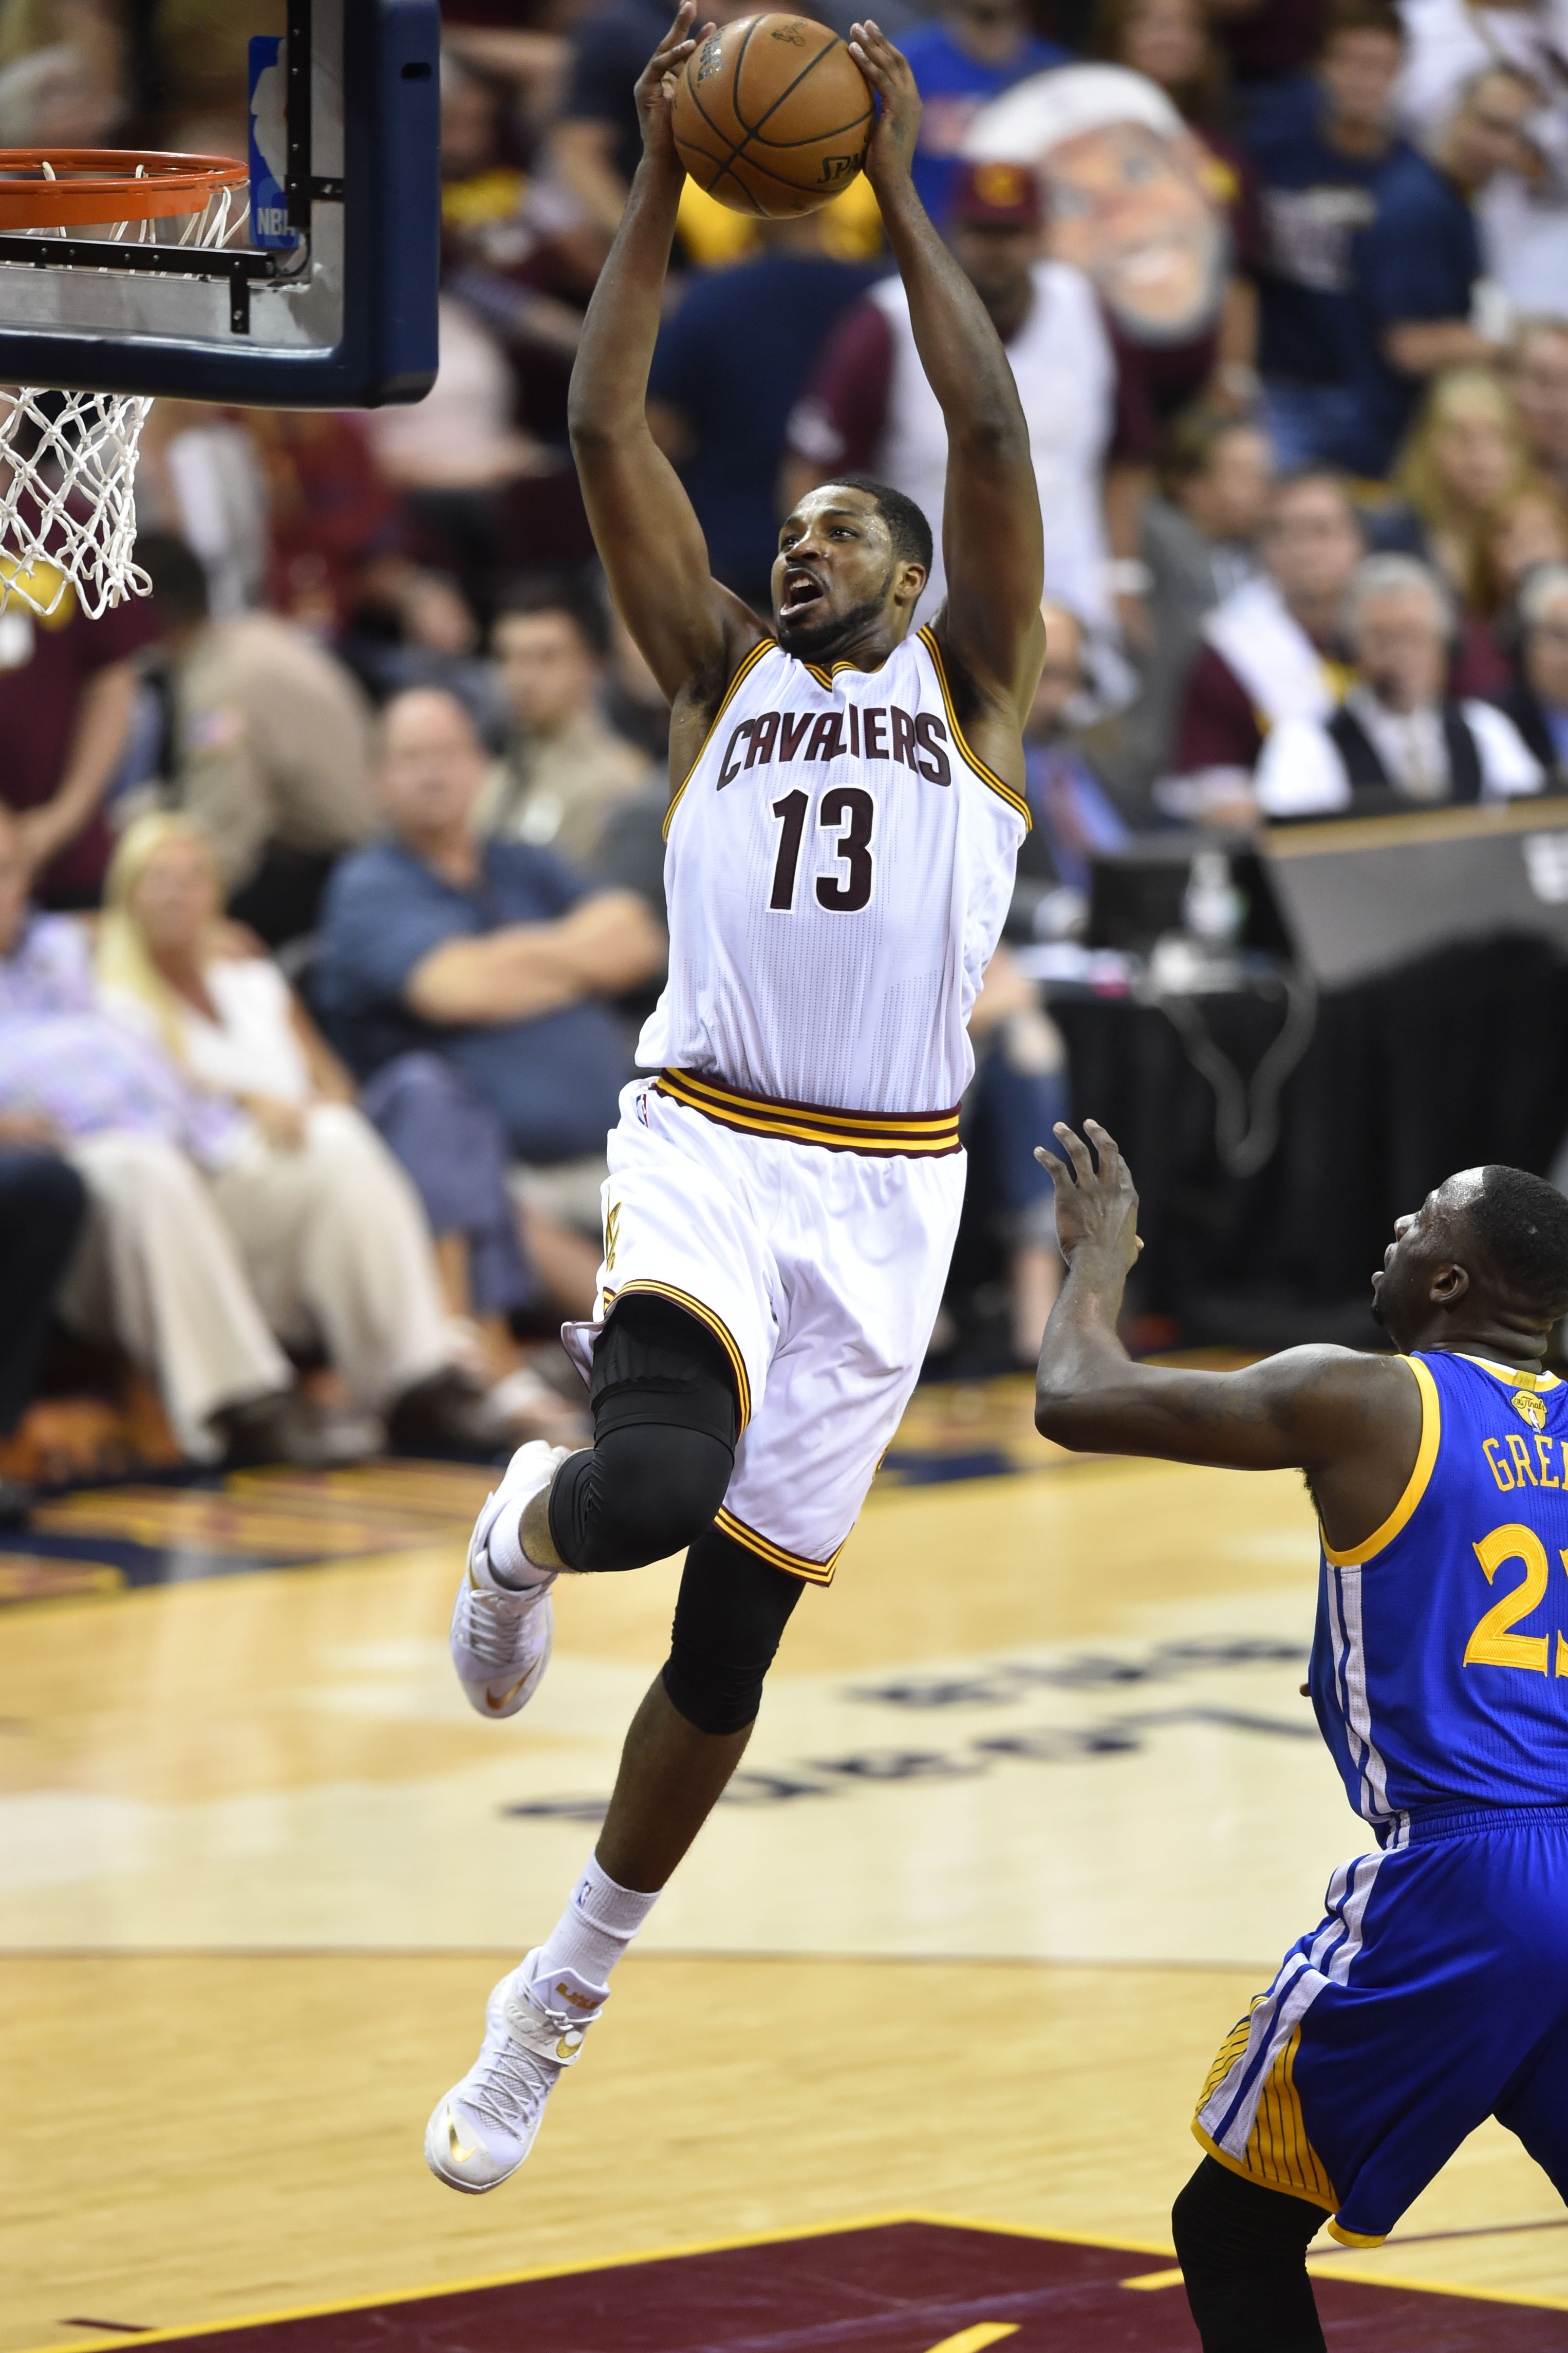 Tristan Thompson's contract demands are rather ridiculous